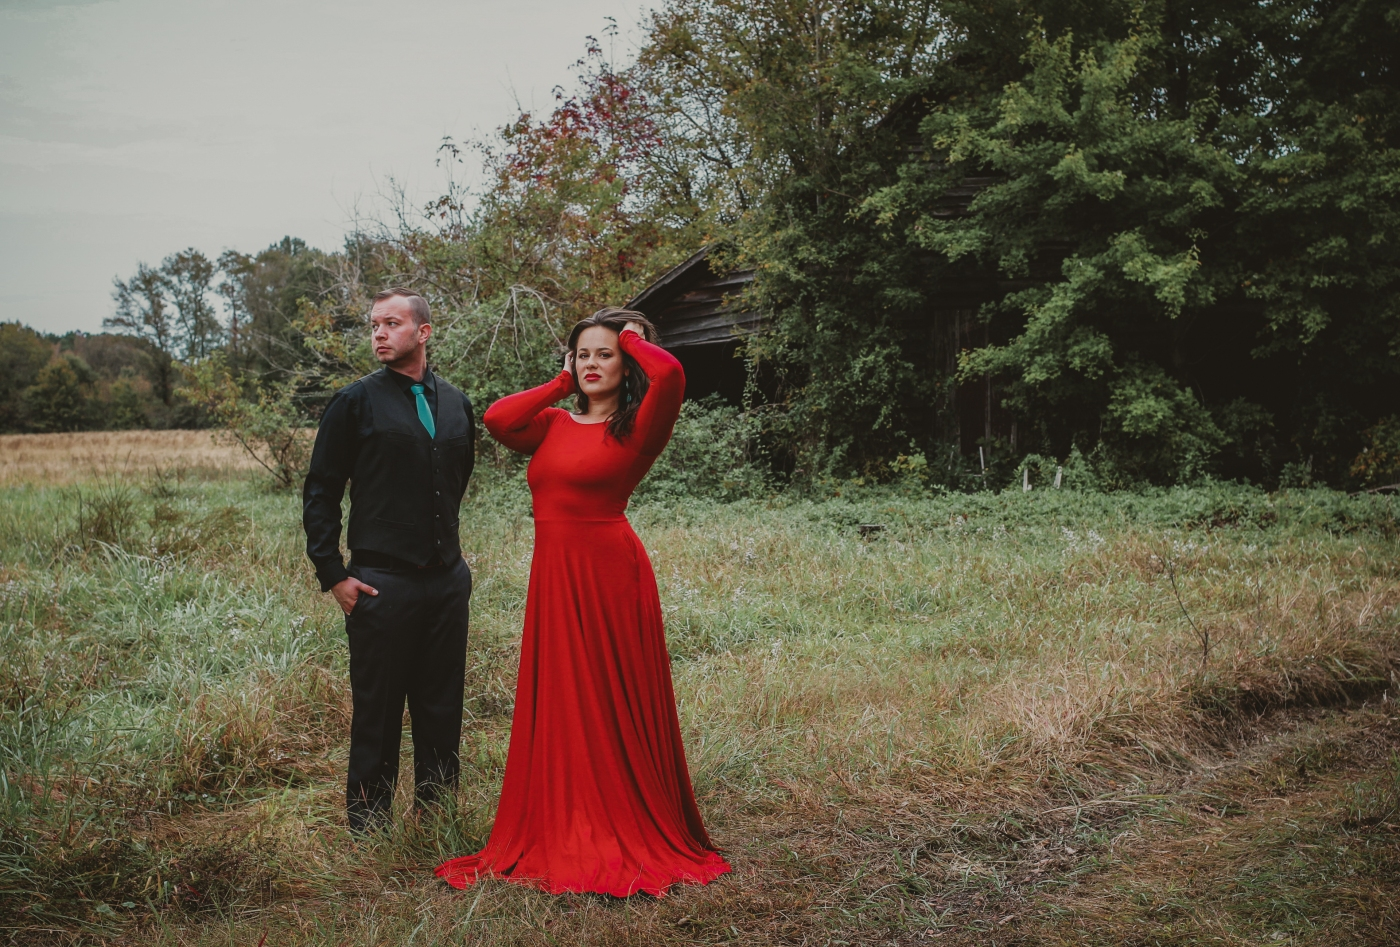 100 Year Old Homes, Abandoned In Virginia, Abandoned Virginia Homes, Dressed To Kill Photography, Models, Old Farm Houses, Open Fields, Red Dress, Styled Modeling, Tashena Shaw Photography, Virginia, Virginia Beach Photographer, Virginia Model Photographer